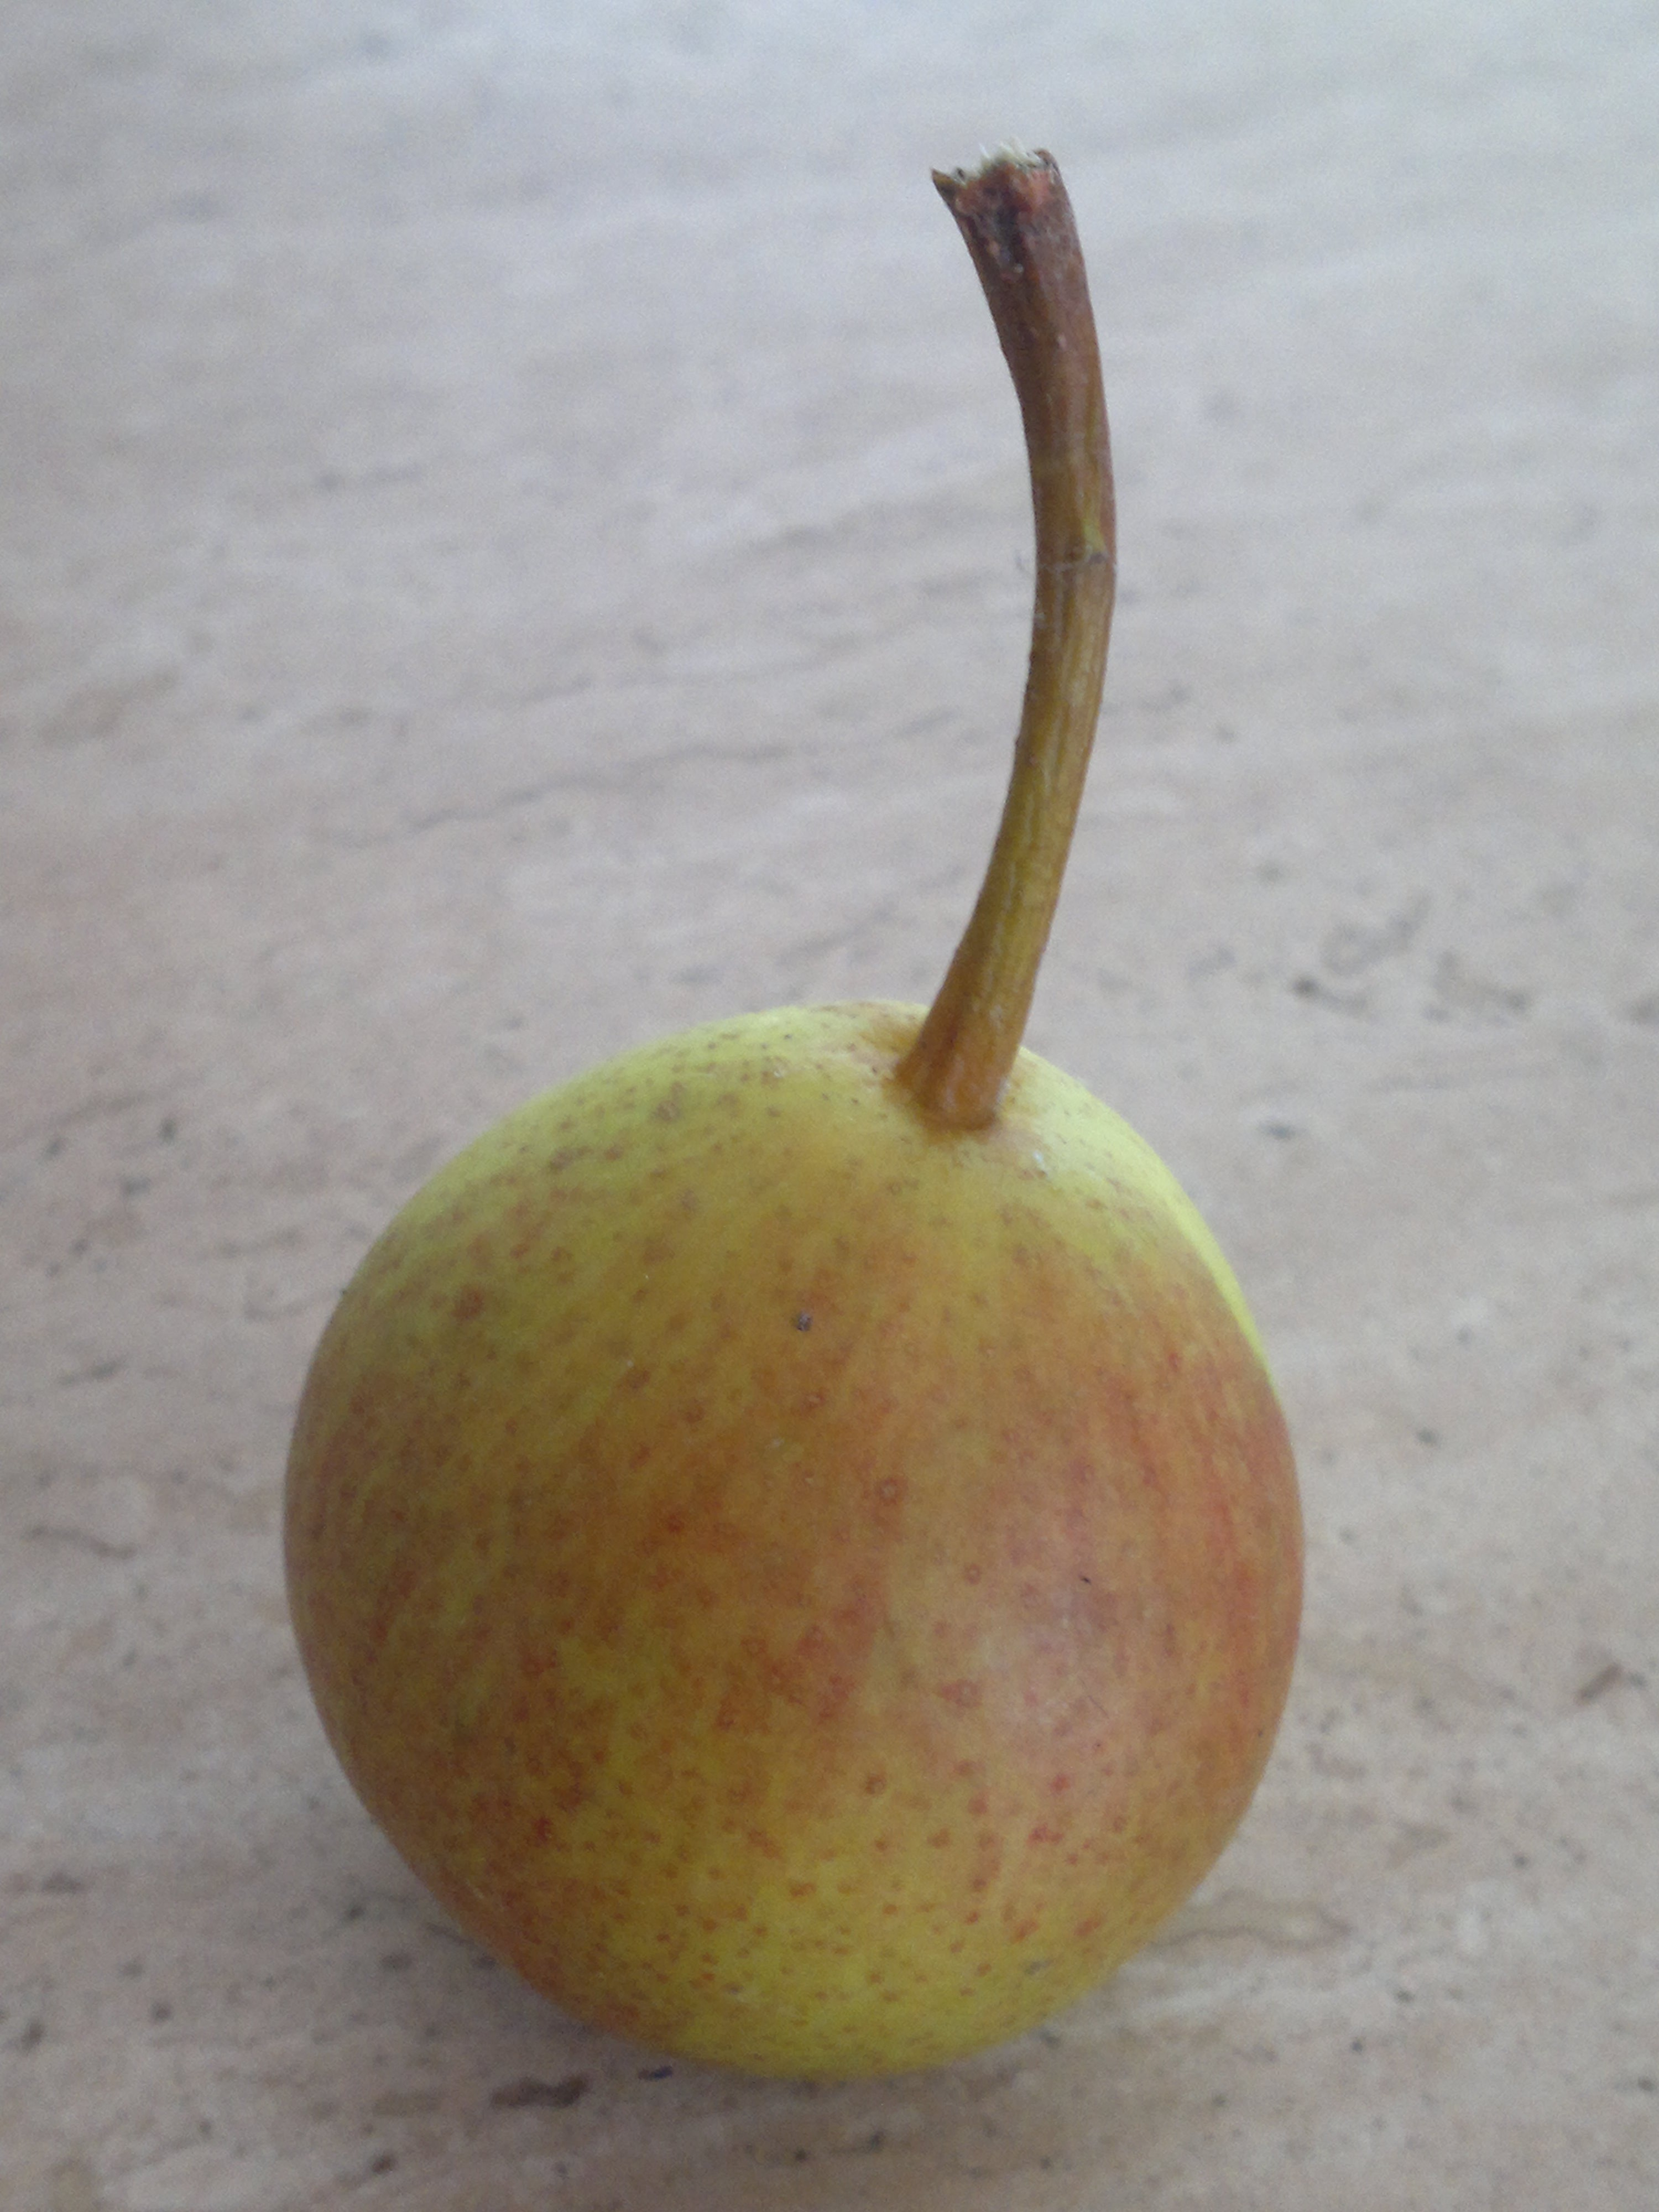 Doyenne d'Ete, ripe and ready to eat in July